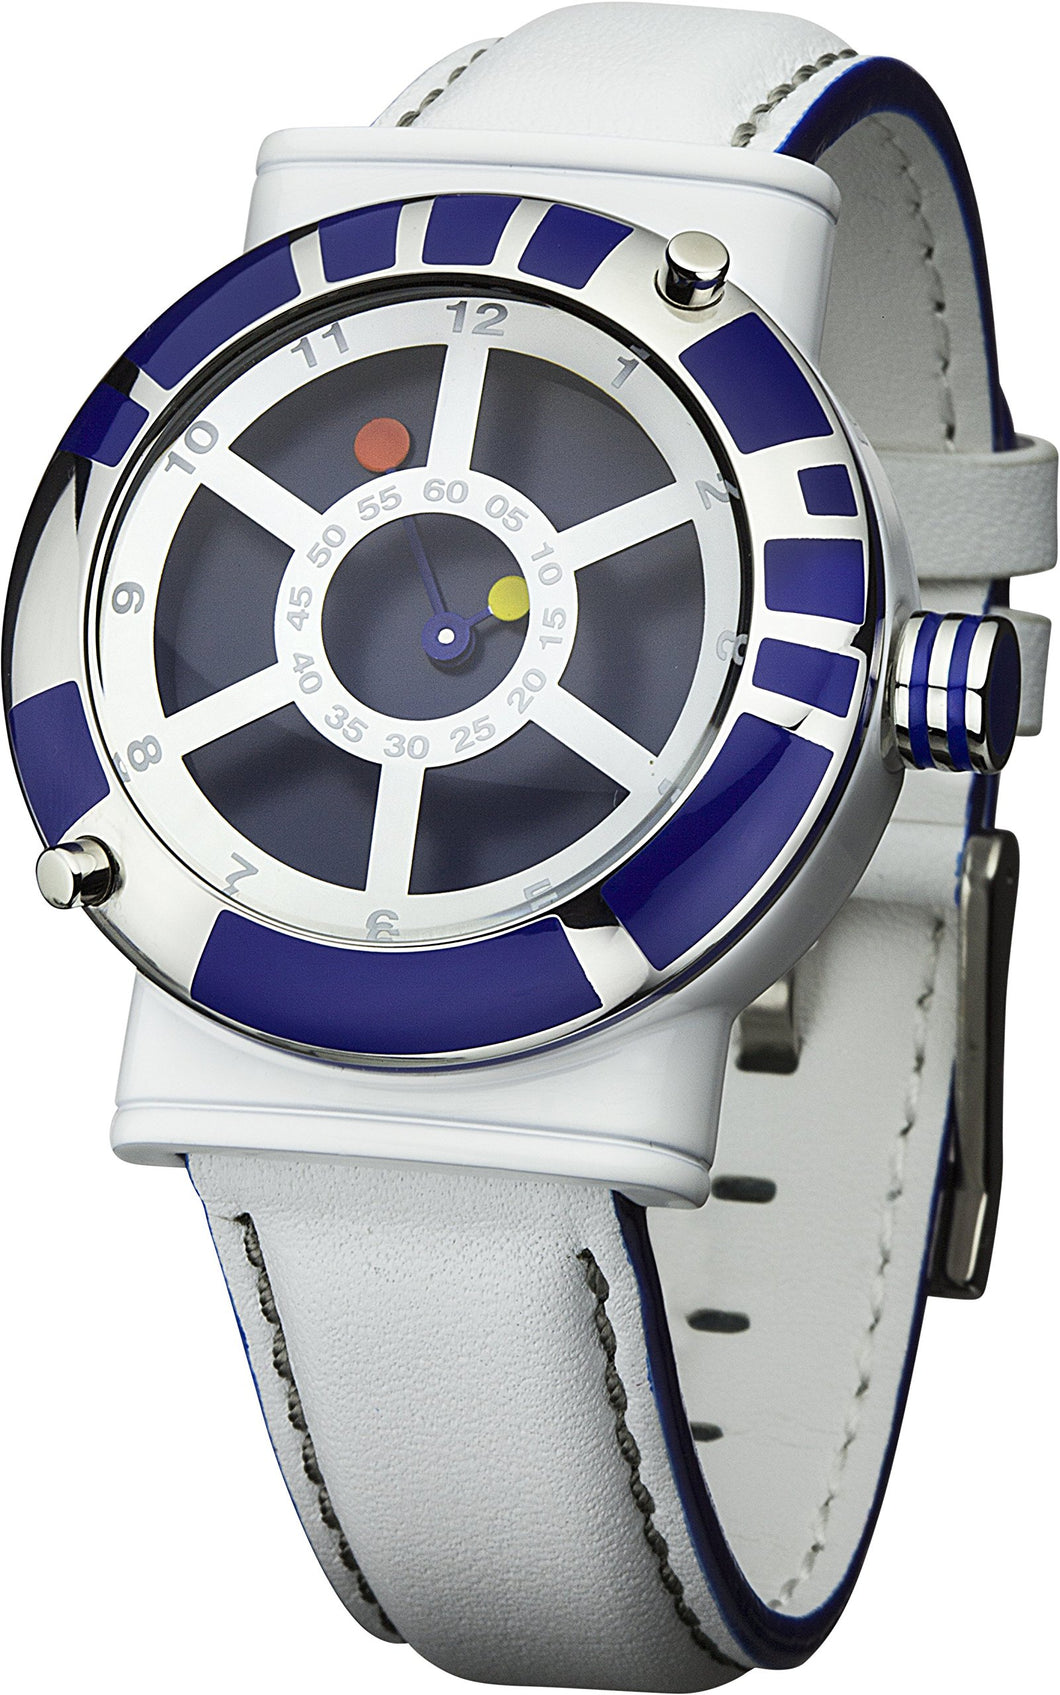 Star Wars Men's Quartz Watch With Blue Dial Analogue Display And White Leather